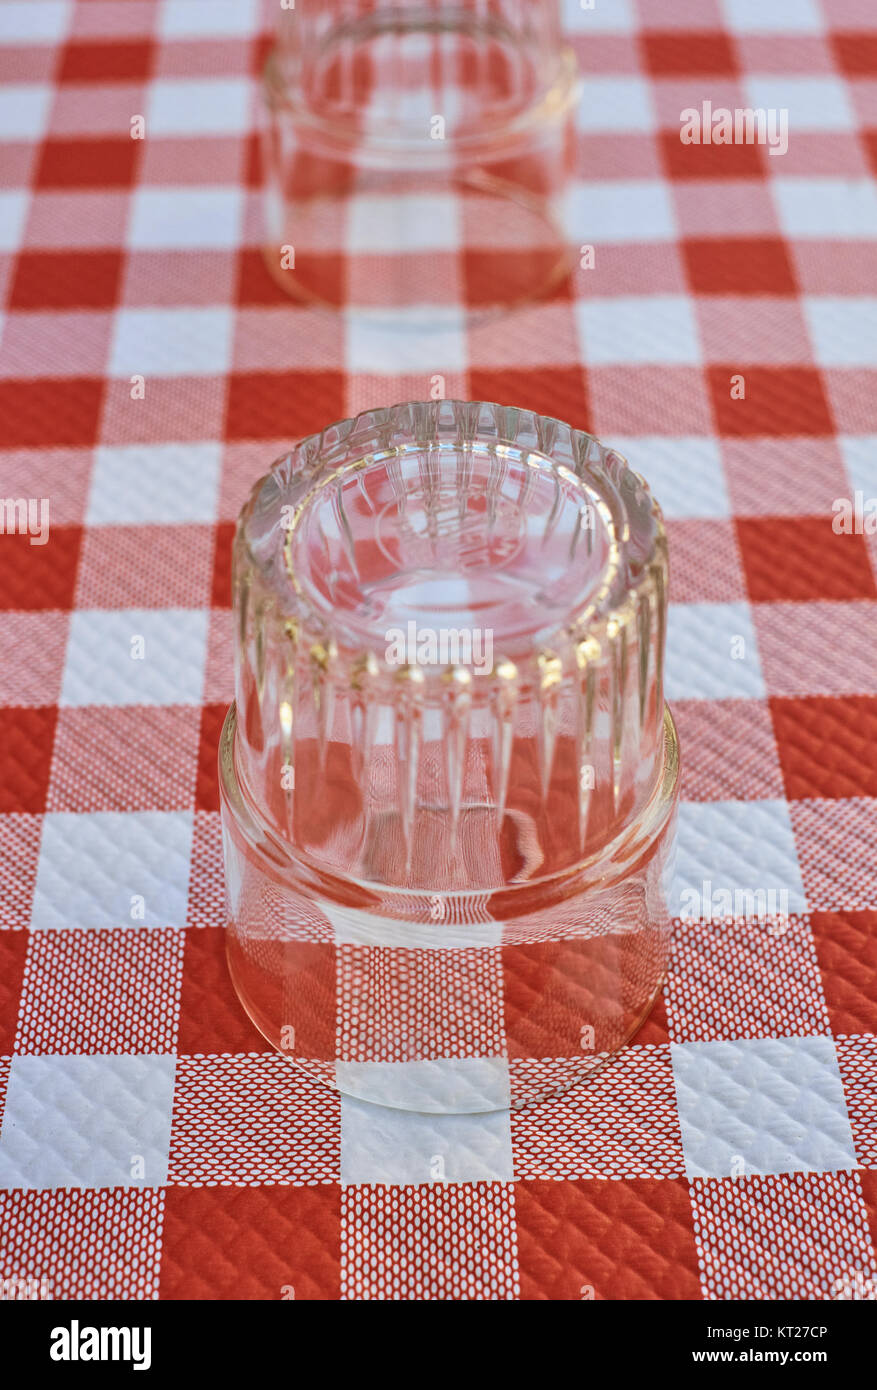 A classic red Gingham check table cloth with glass - Stock Image